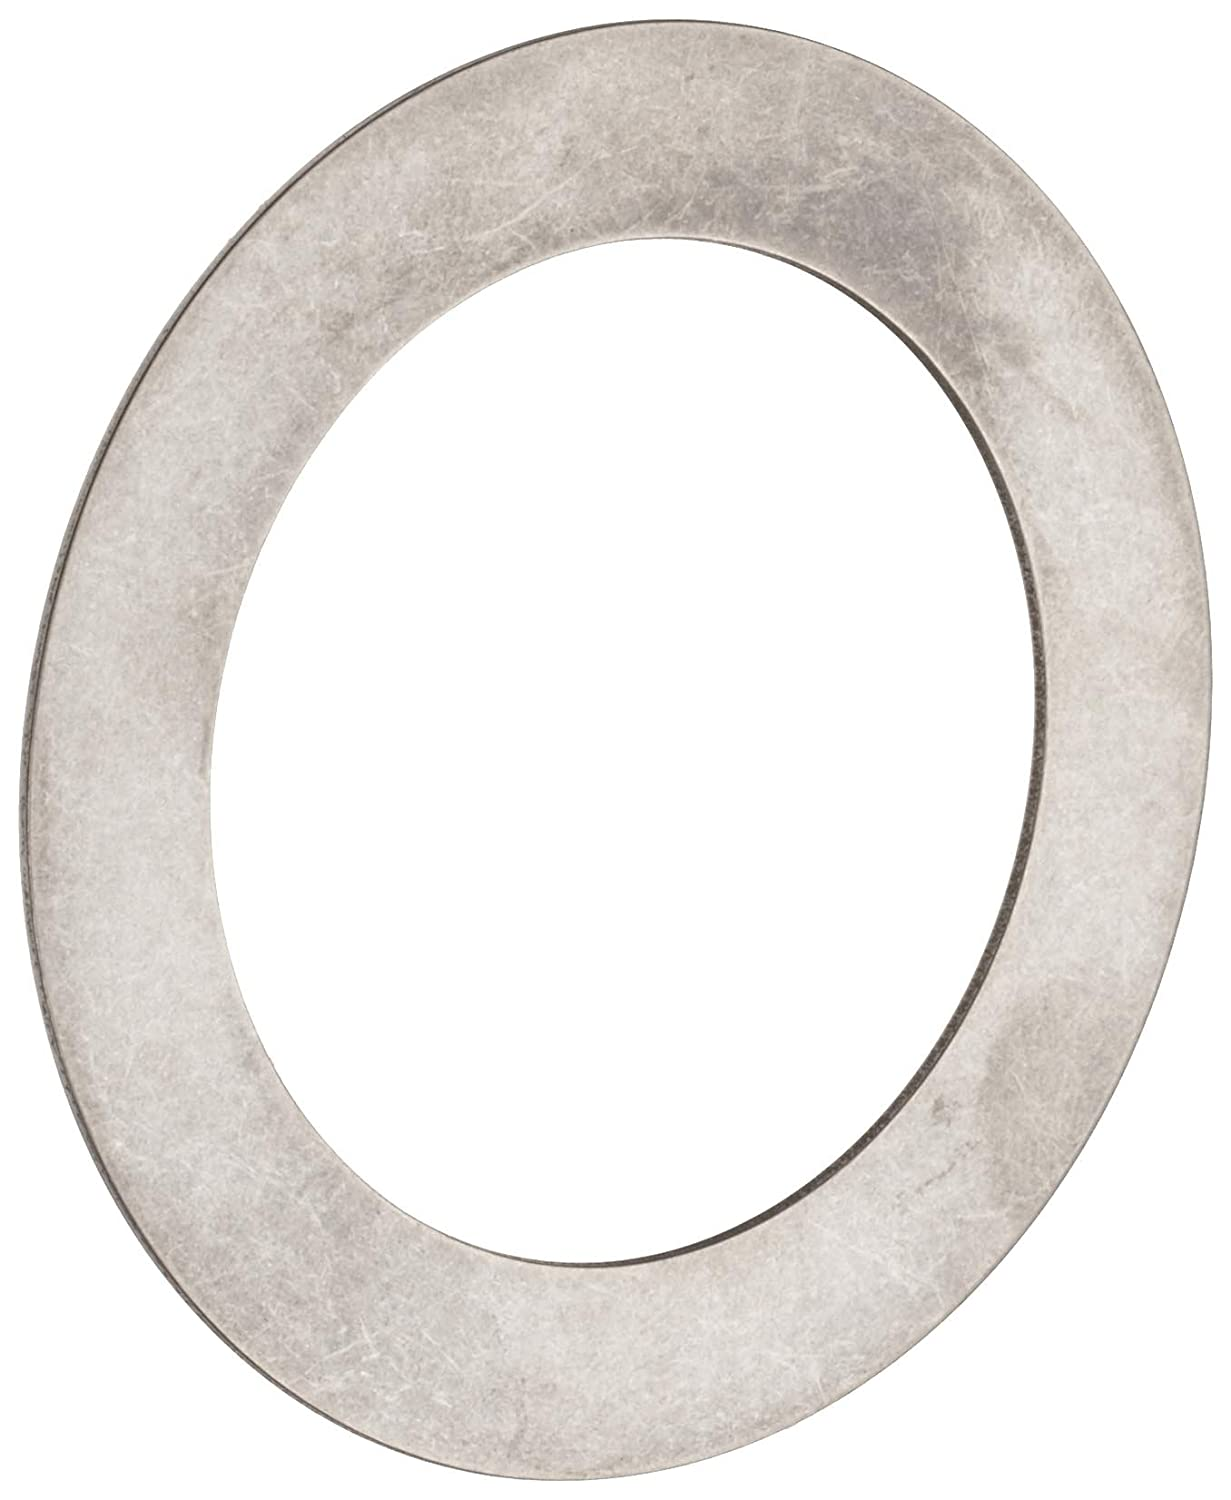 INA LS130170 Thrust Limited Special High quality Price Roller Bearing 130mm ID Metric Washer 170